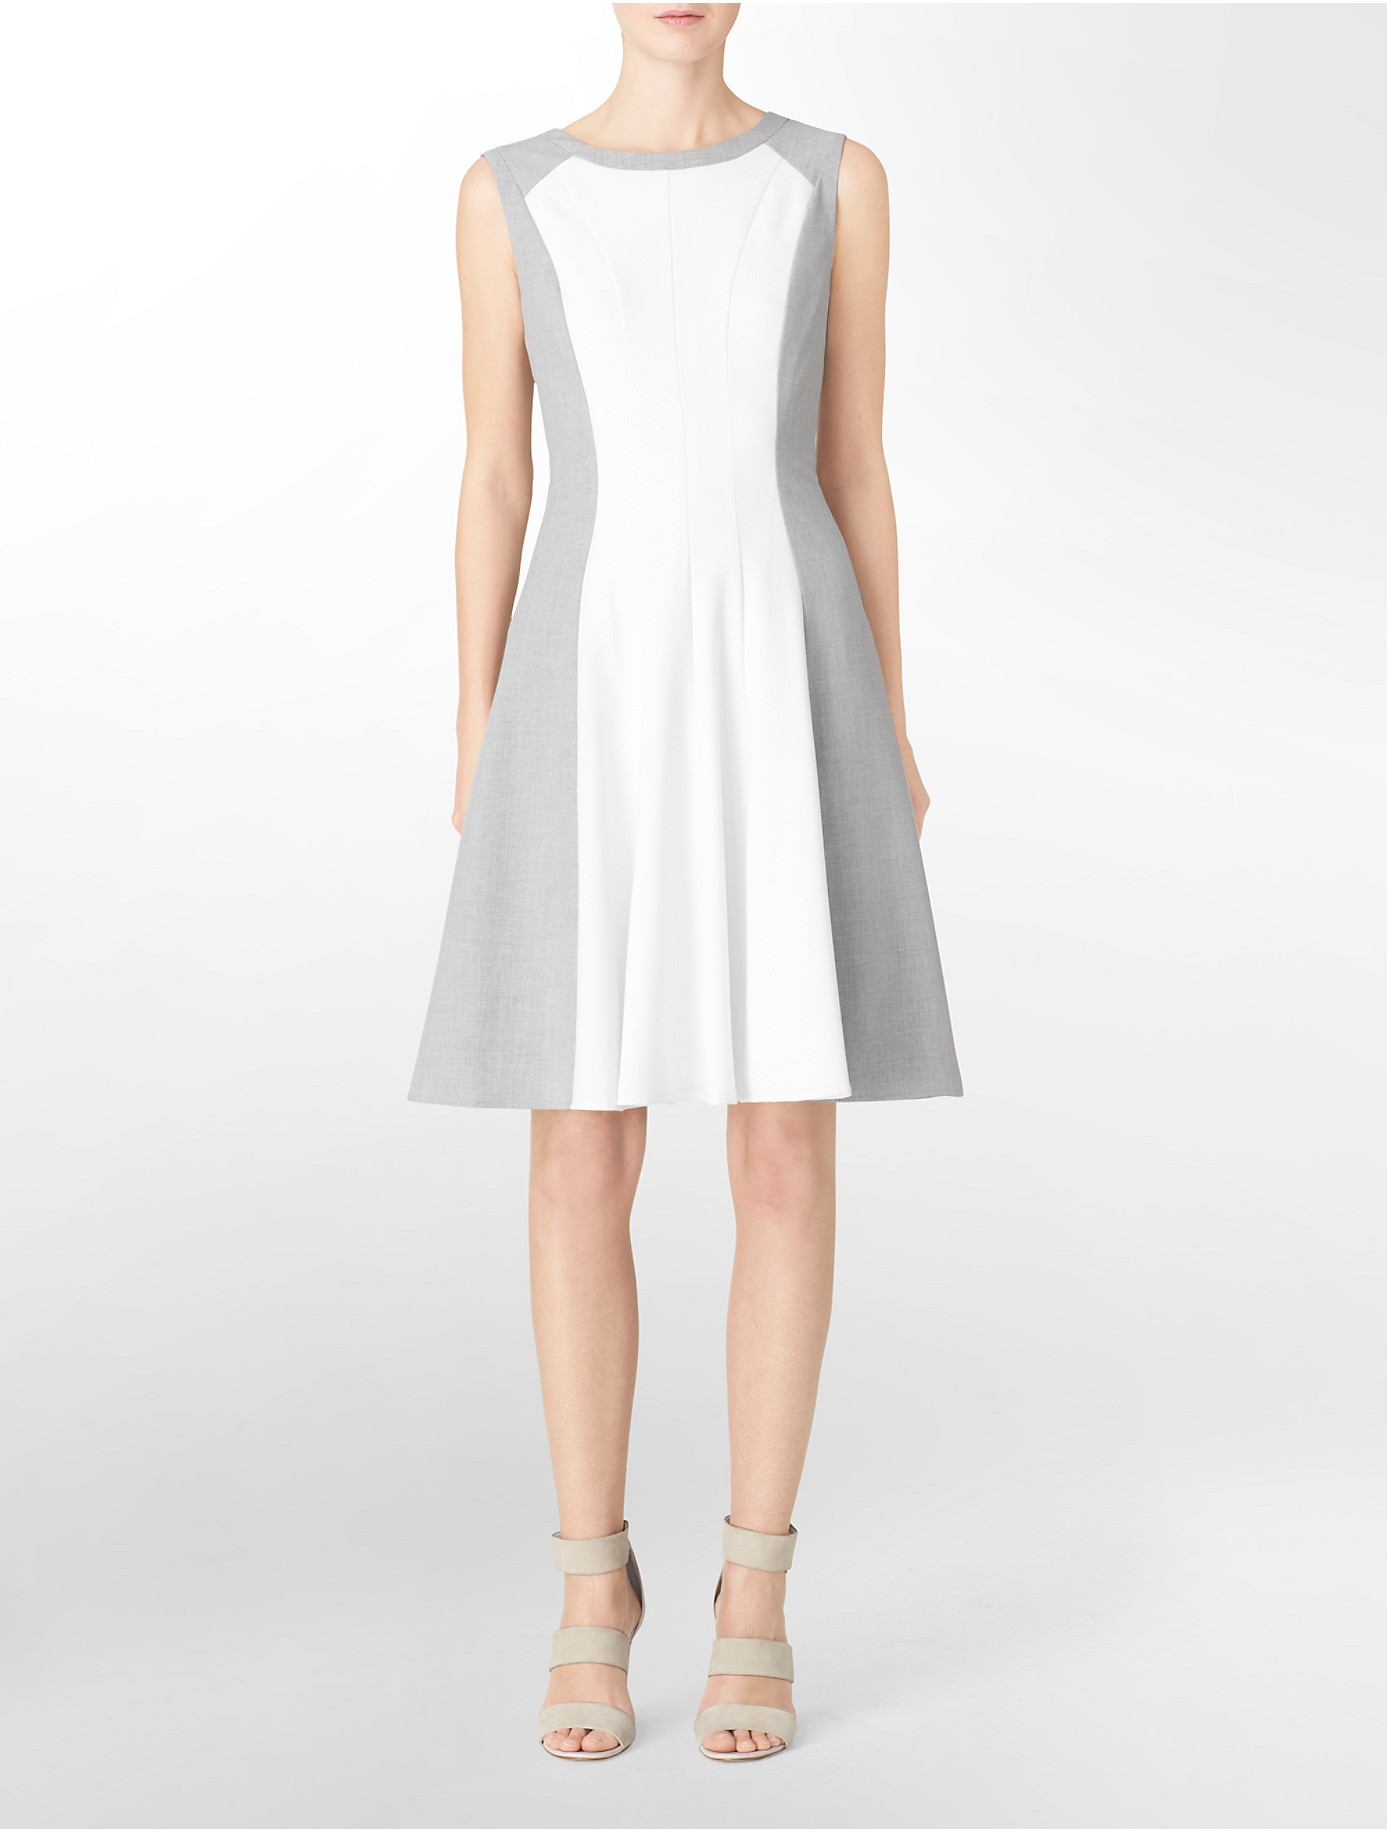 Calvin Klein White Label Colorblock Fit Flare Sleeveless